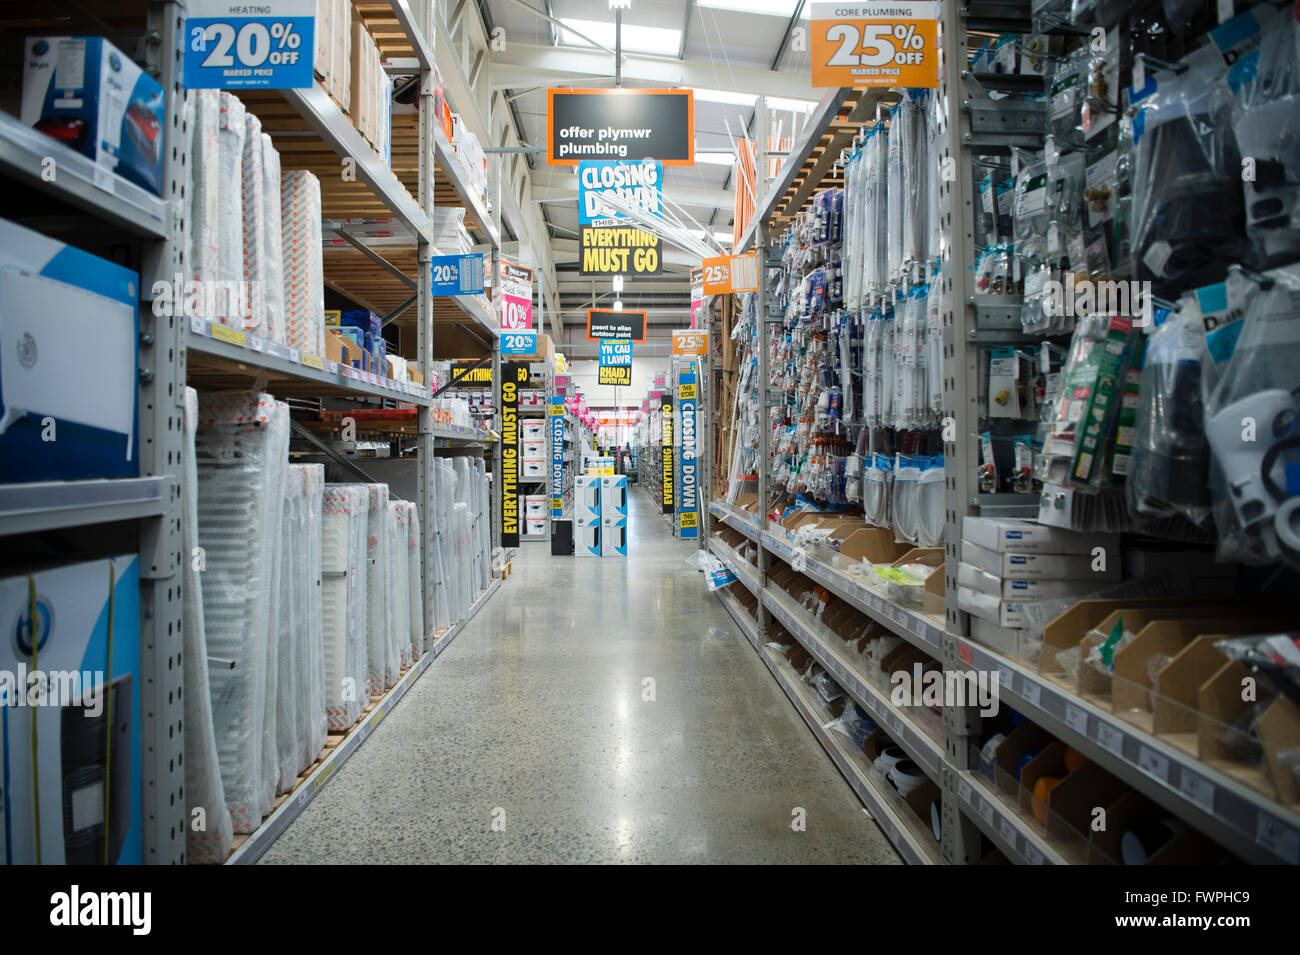 Inside a branch of bq b and q diy do it yourself shop store in inside a branch of bq b and q diy do it yourself shop store in the weeks prior to its closing down uk solutioingenieria Image collections